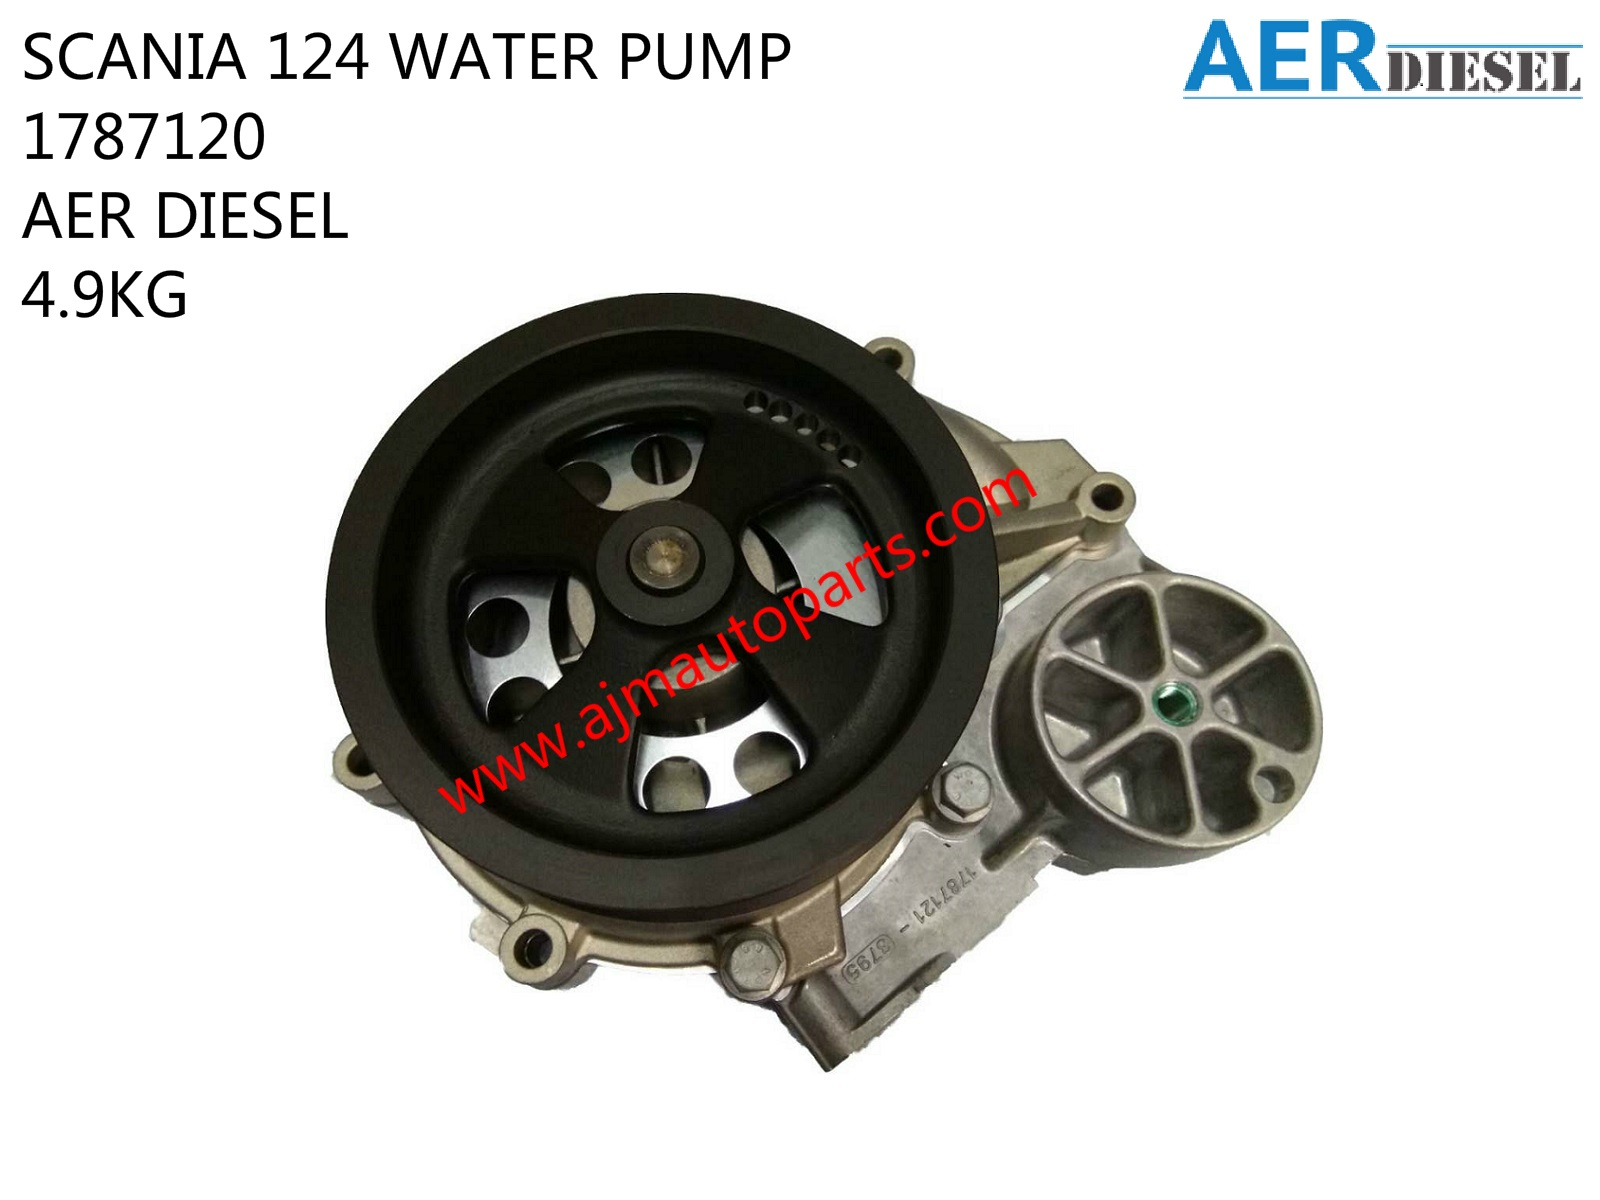 SCANIA 124 WATER PUMP-1787120